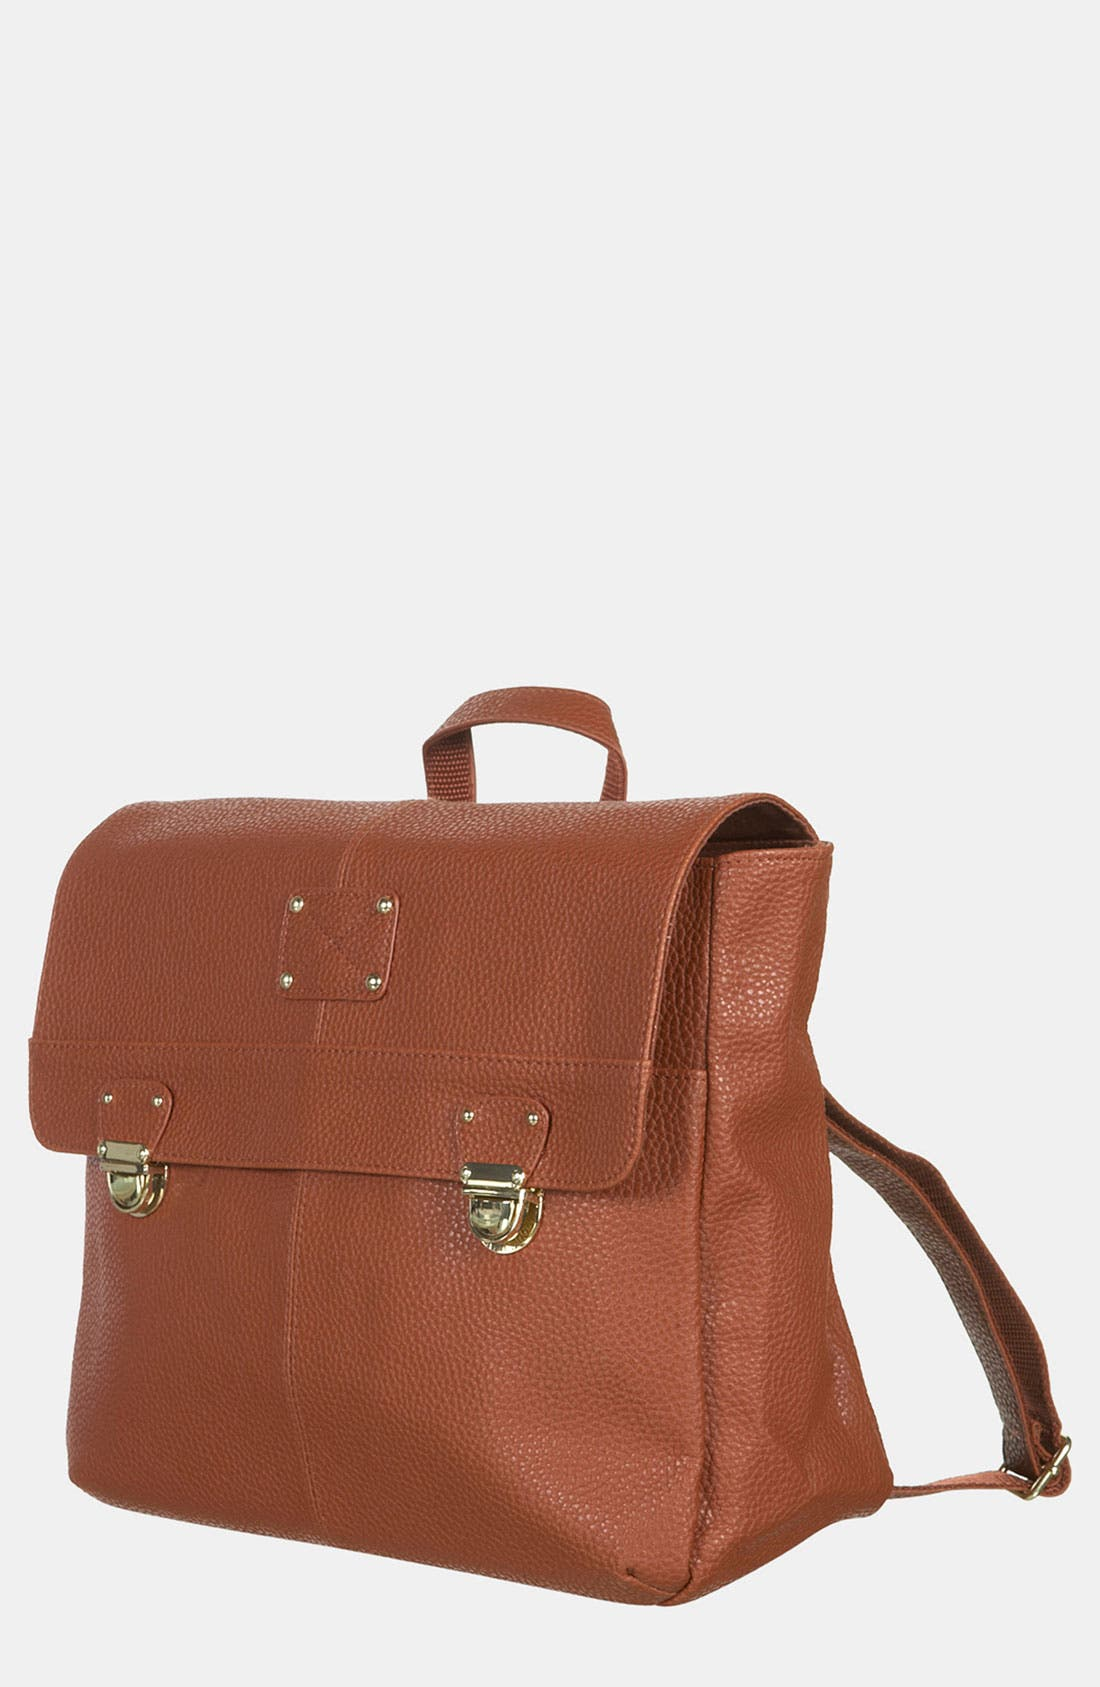 Alternate Image 1 Selected - Topshop Push Lock Satchel